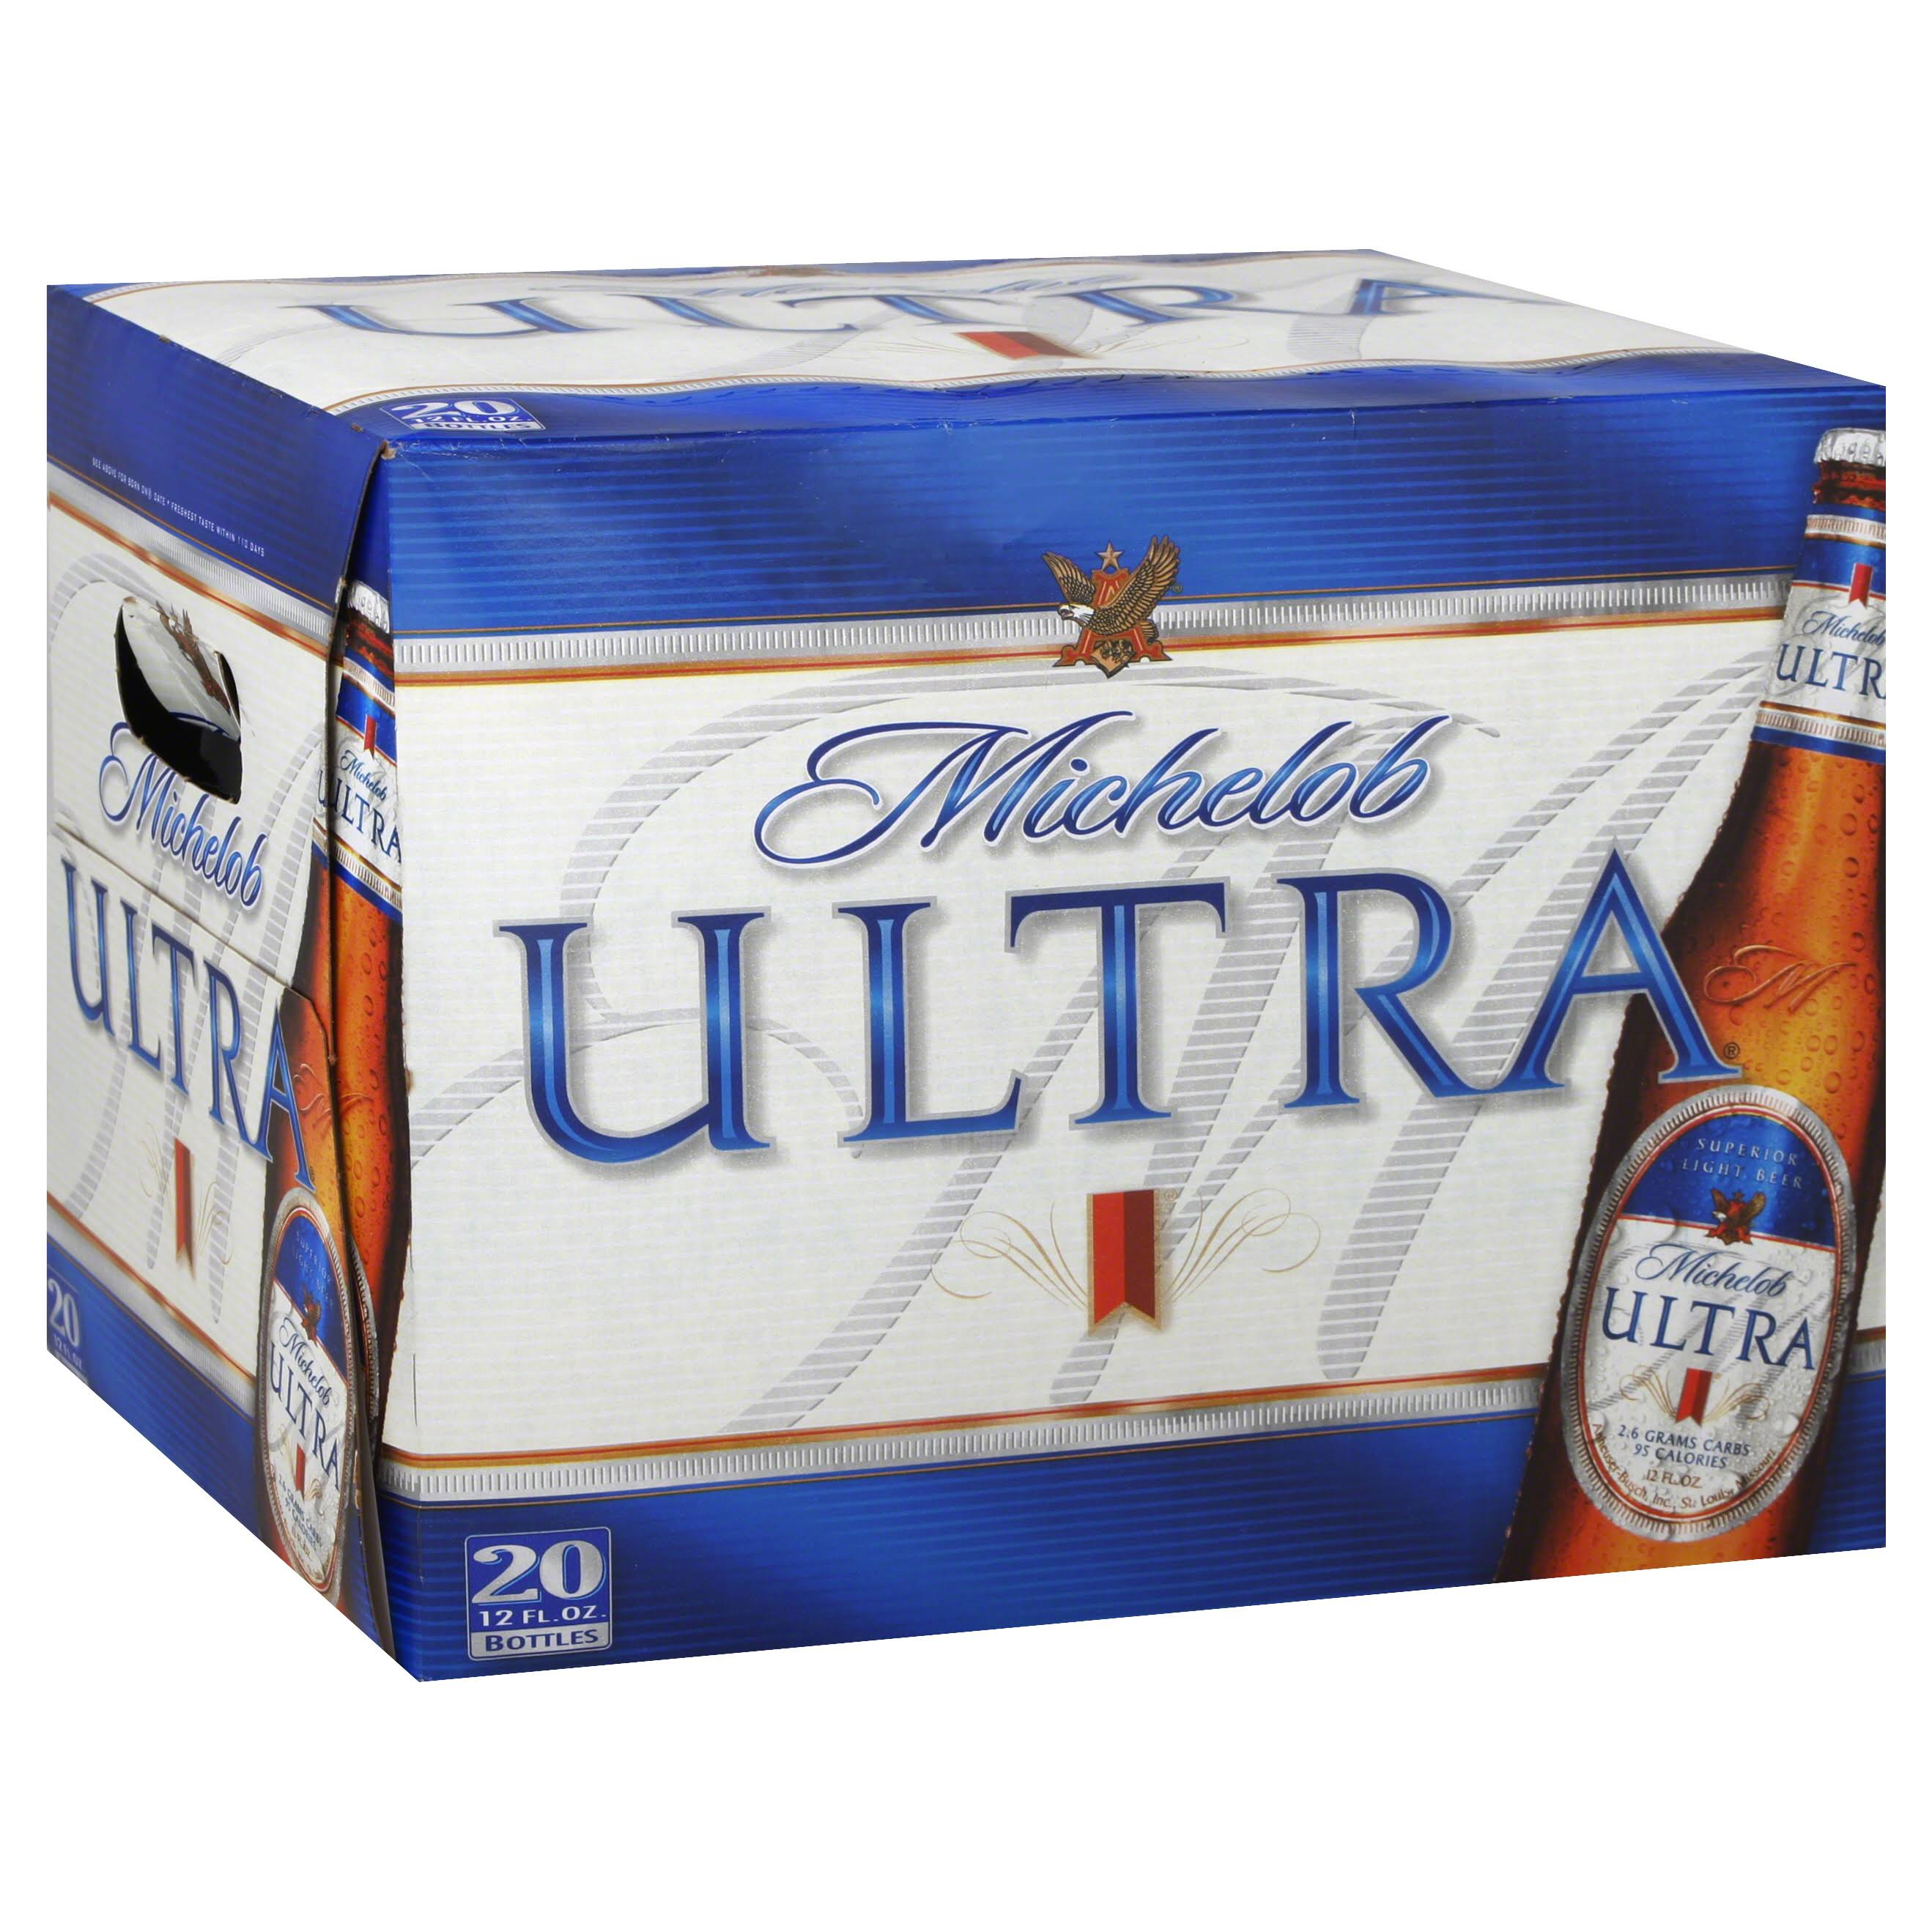 Michelob Ultra Beer - Superior Light, 20x12oz